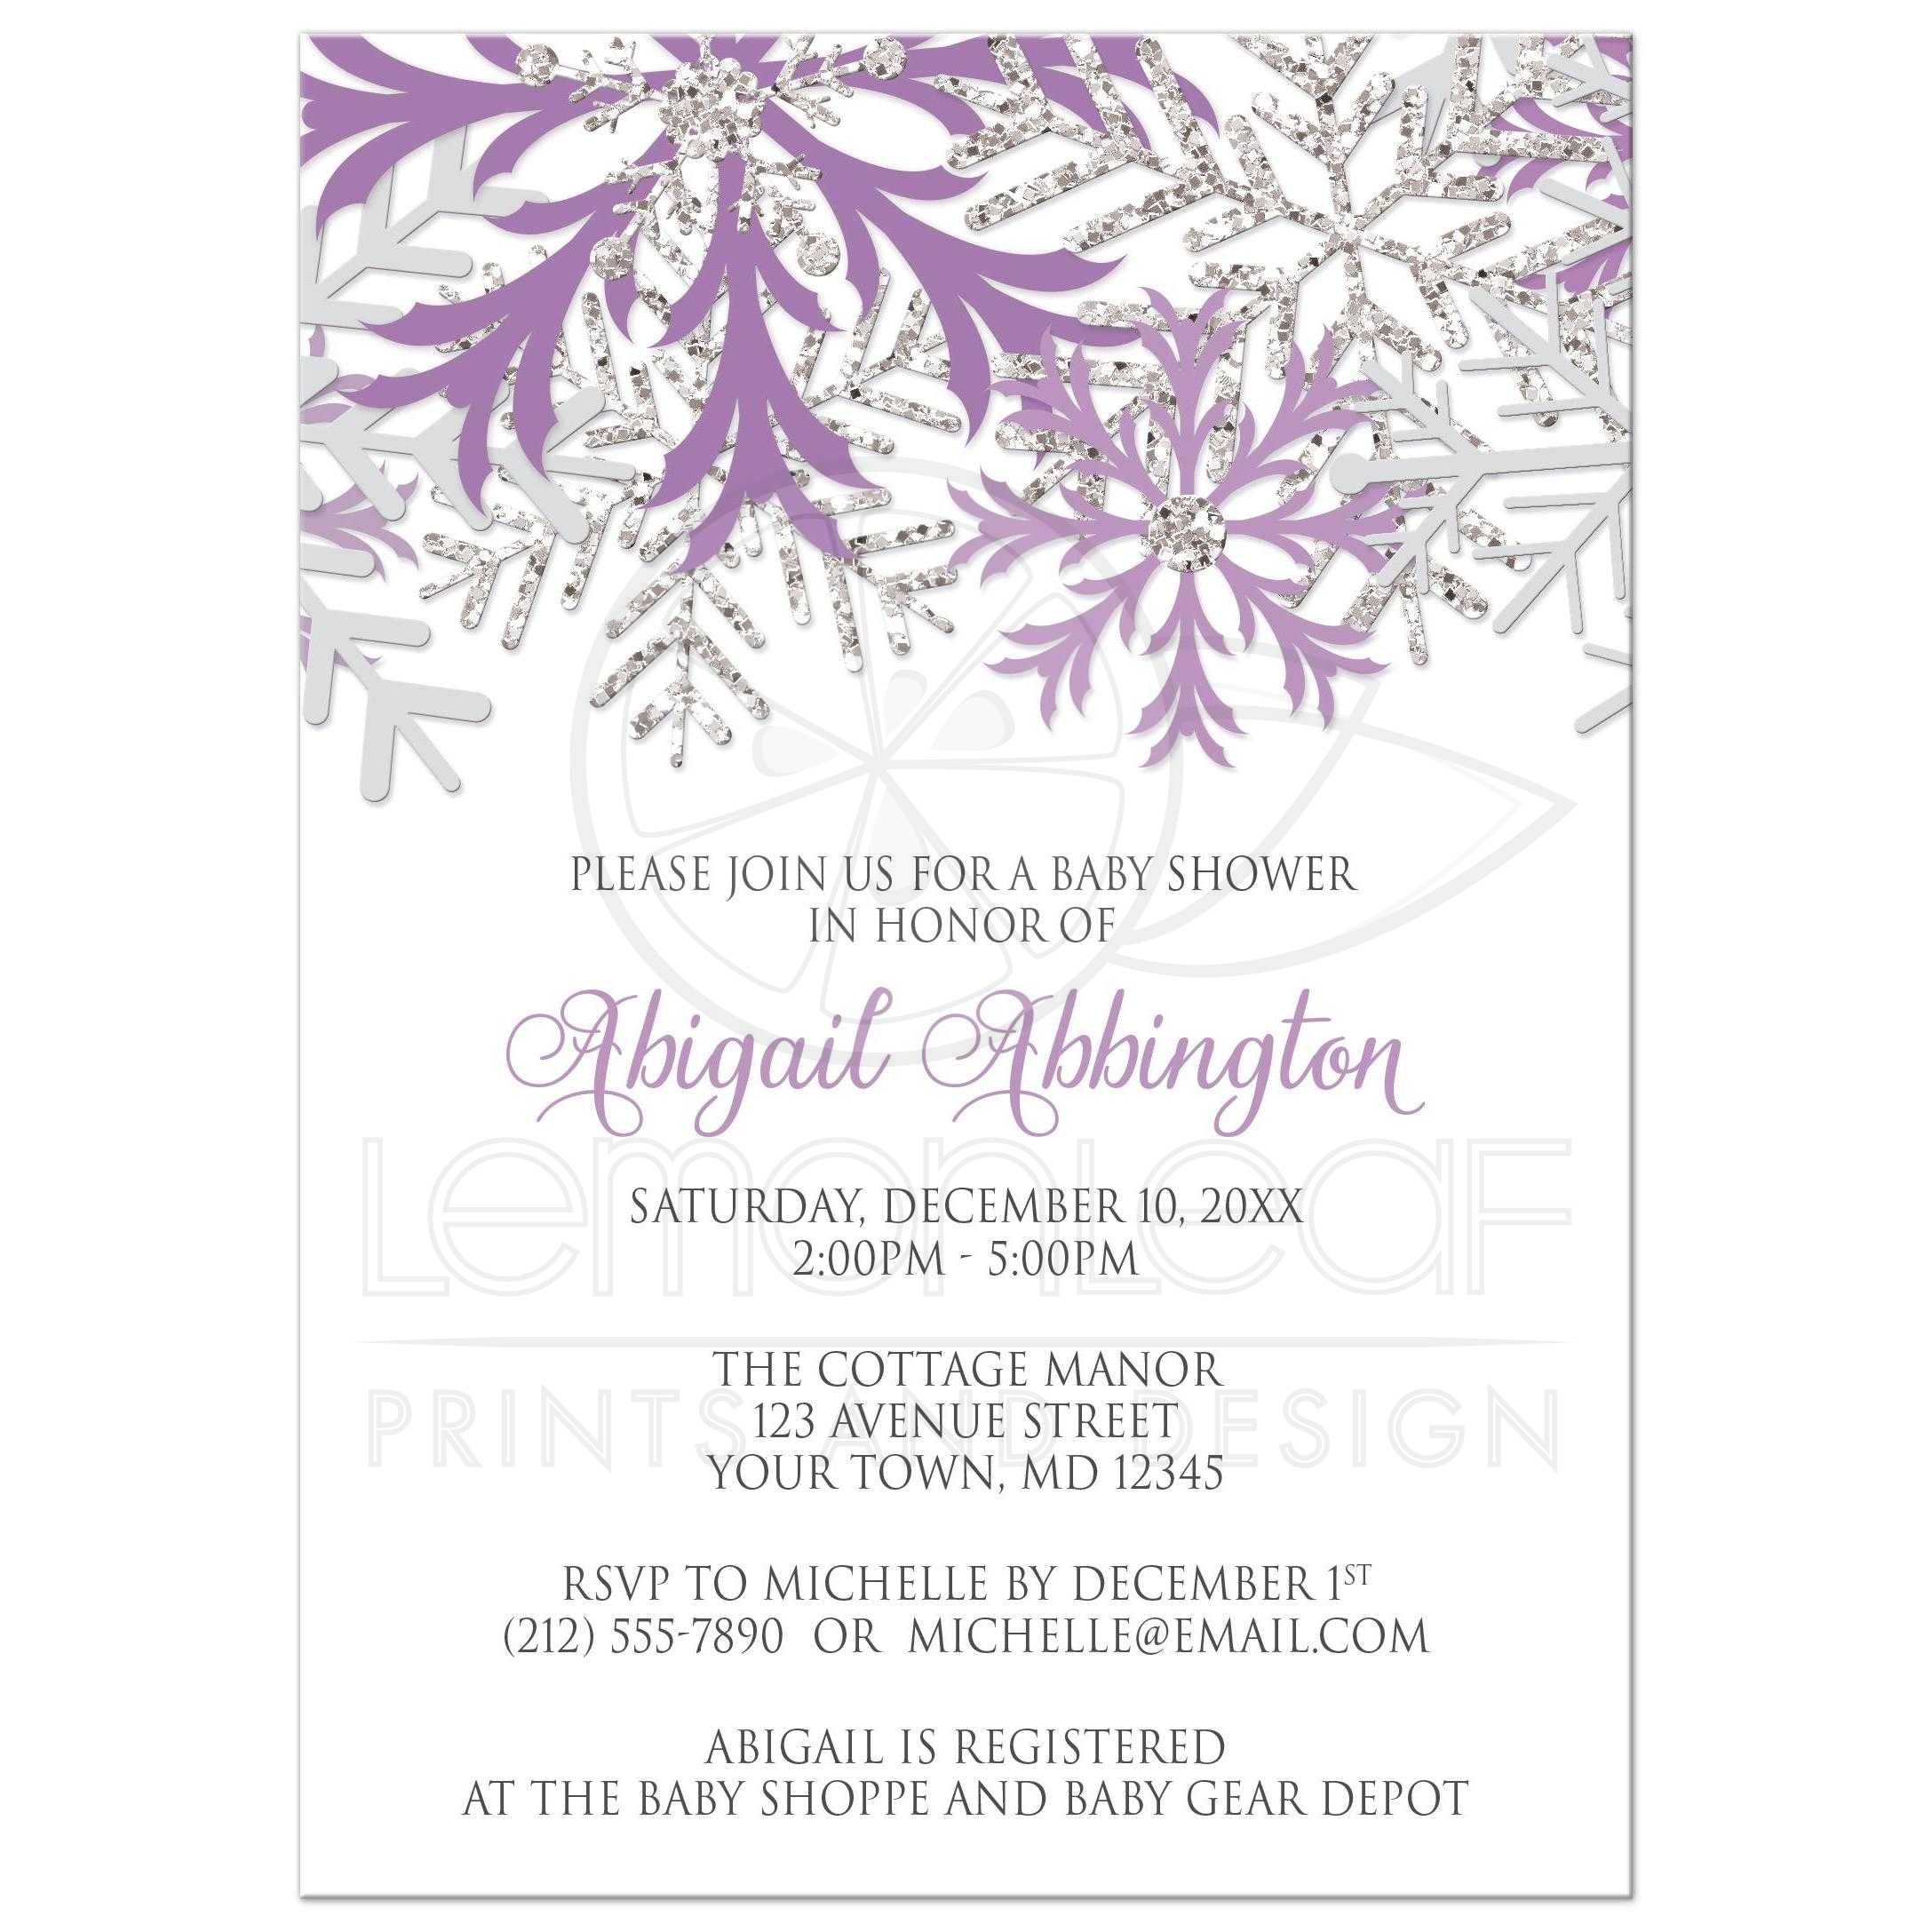 Shower invitations winter snowflake purple silver baby shower invitations winter snowflake purple silver filmwisefo Choice Image